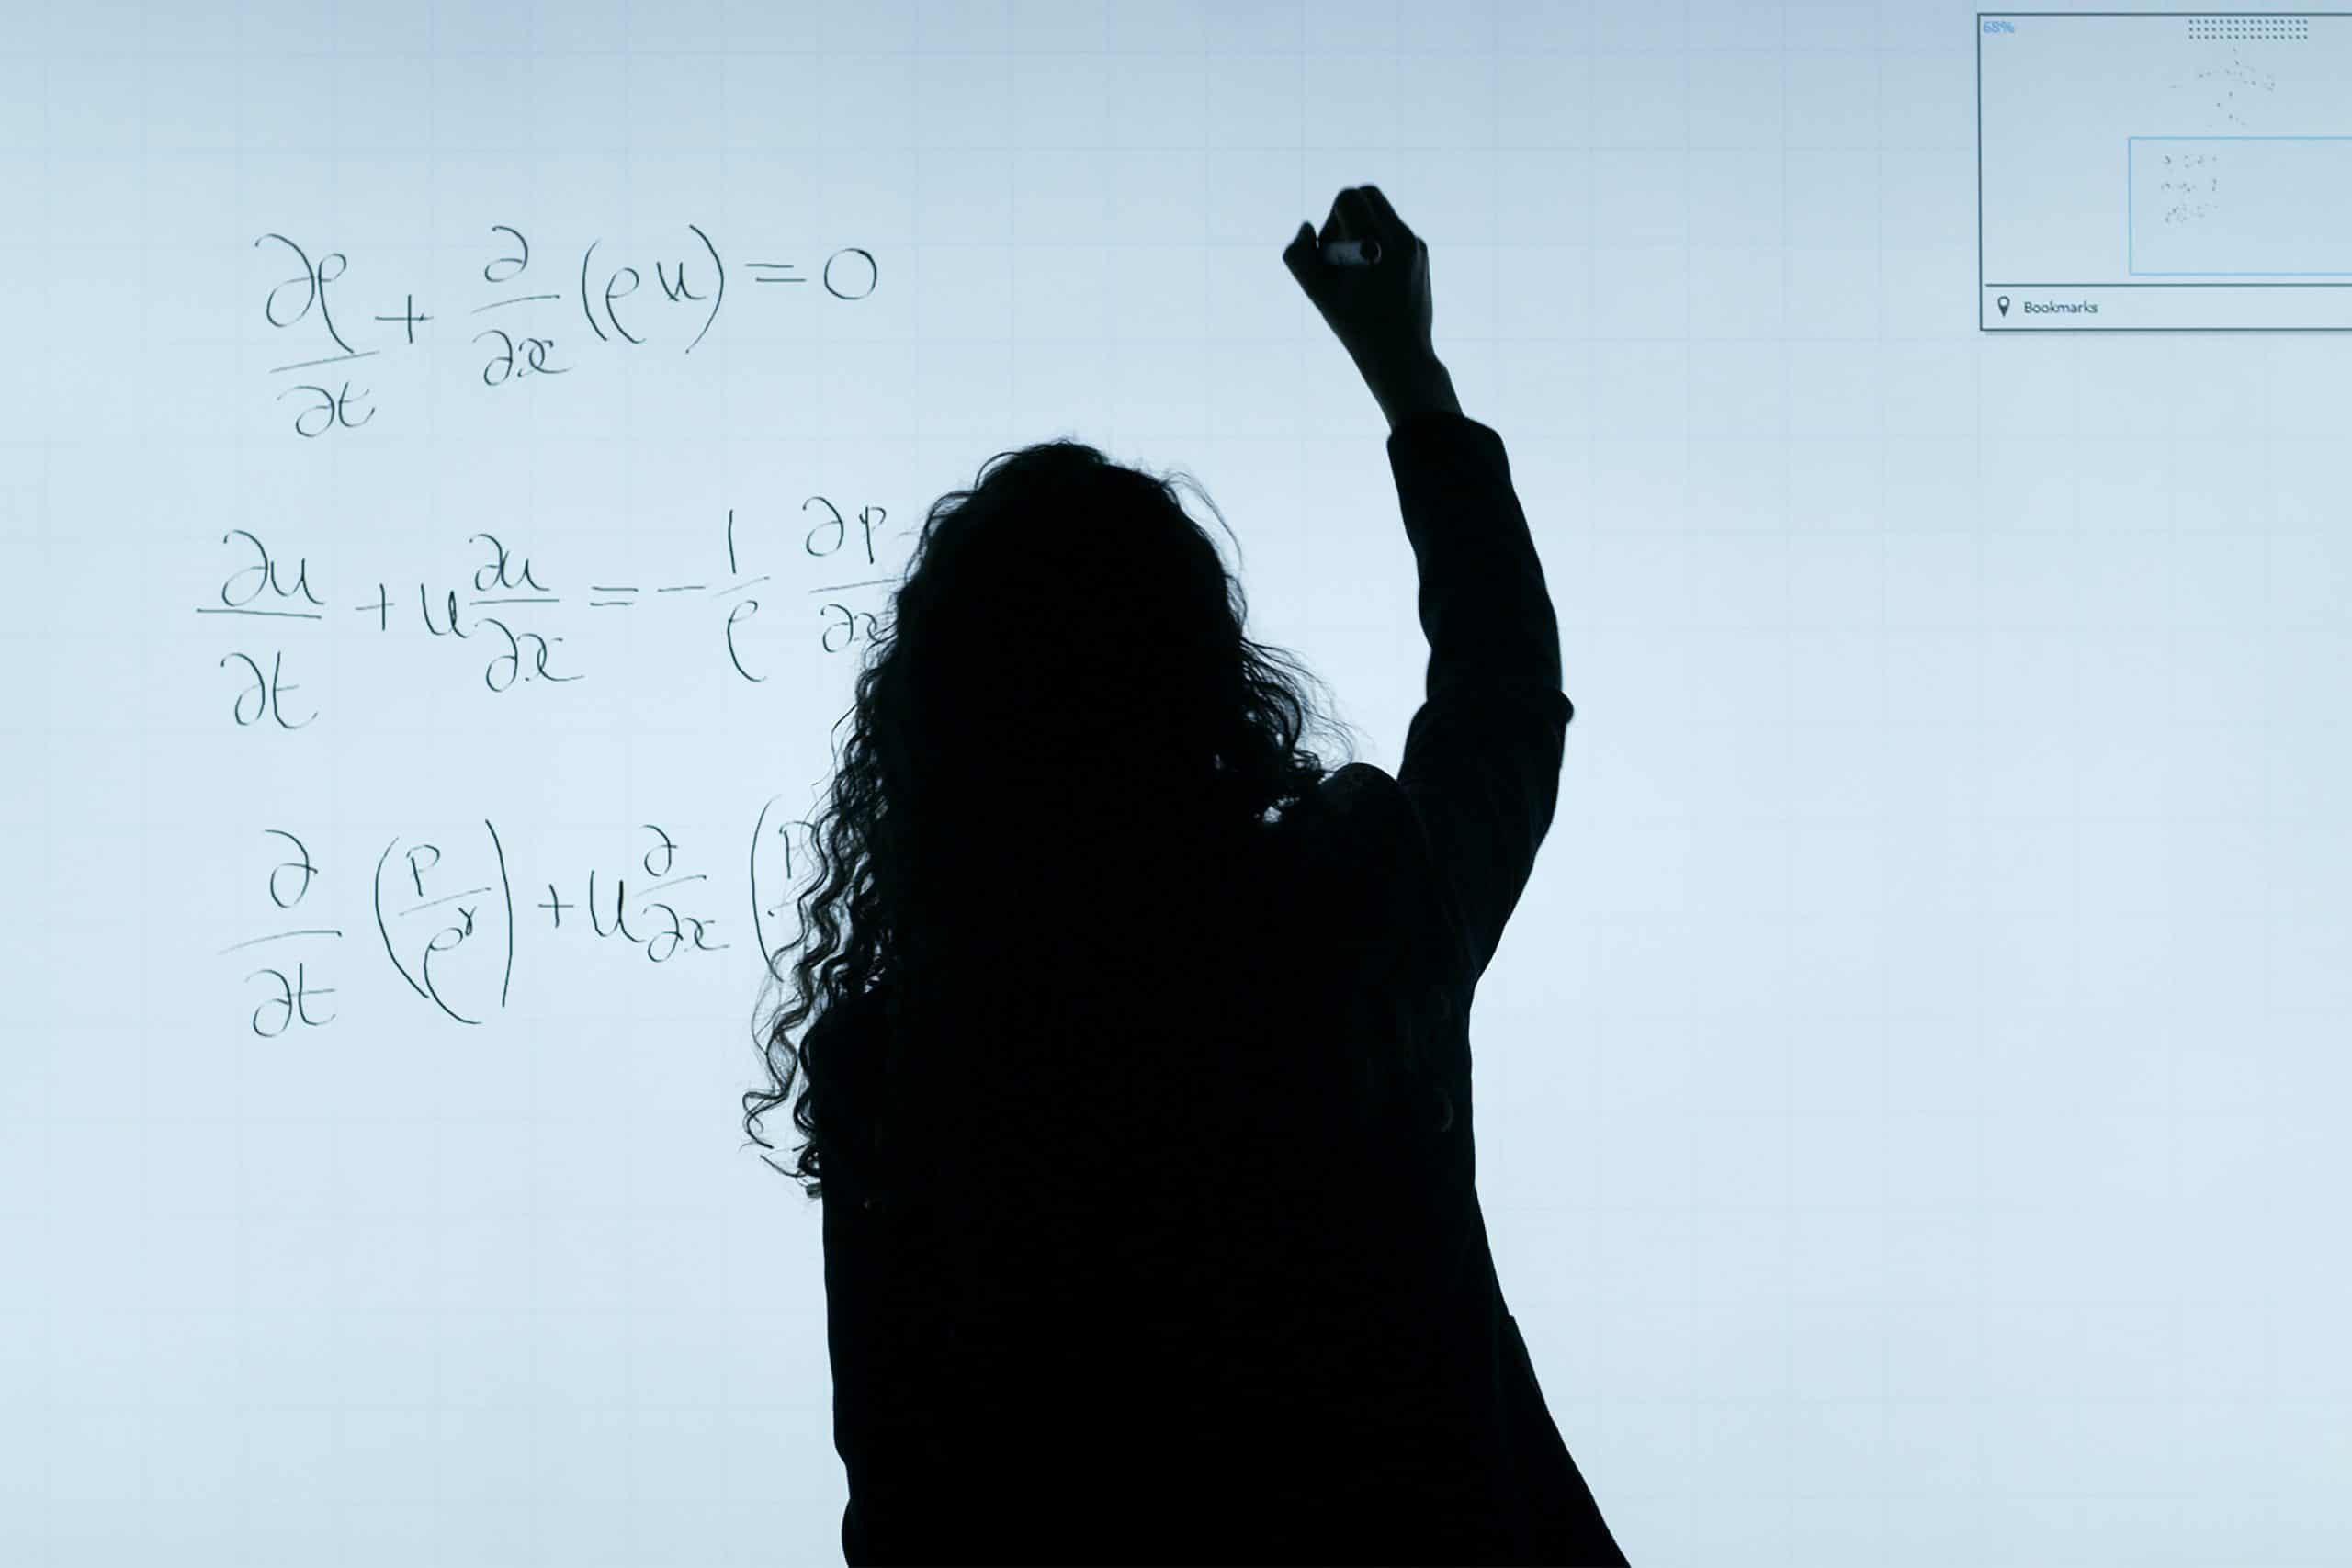 Silhouette of a woman writing on a whiteboard.